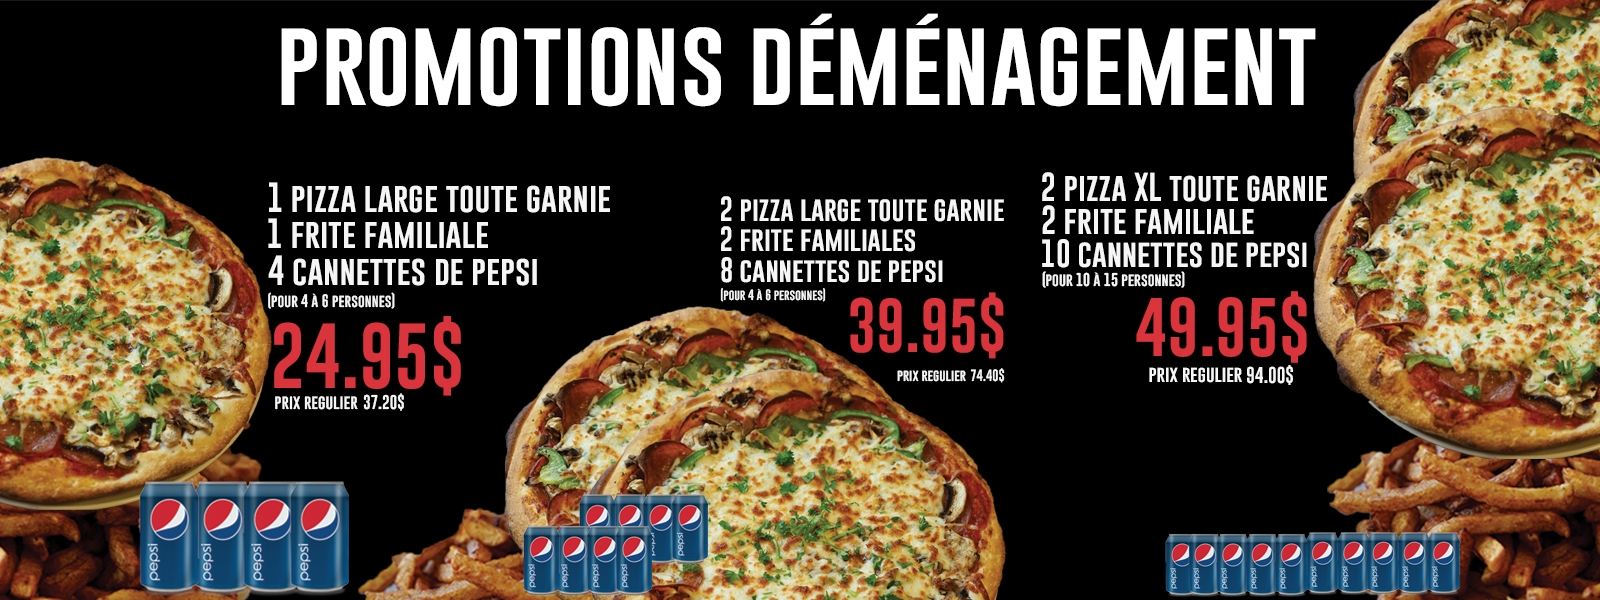 Web Promotions Demenagement 2 Fr